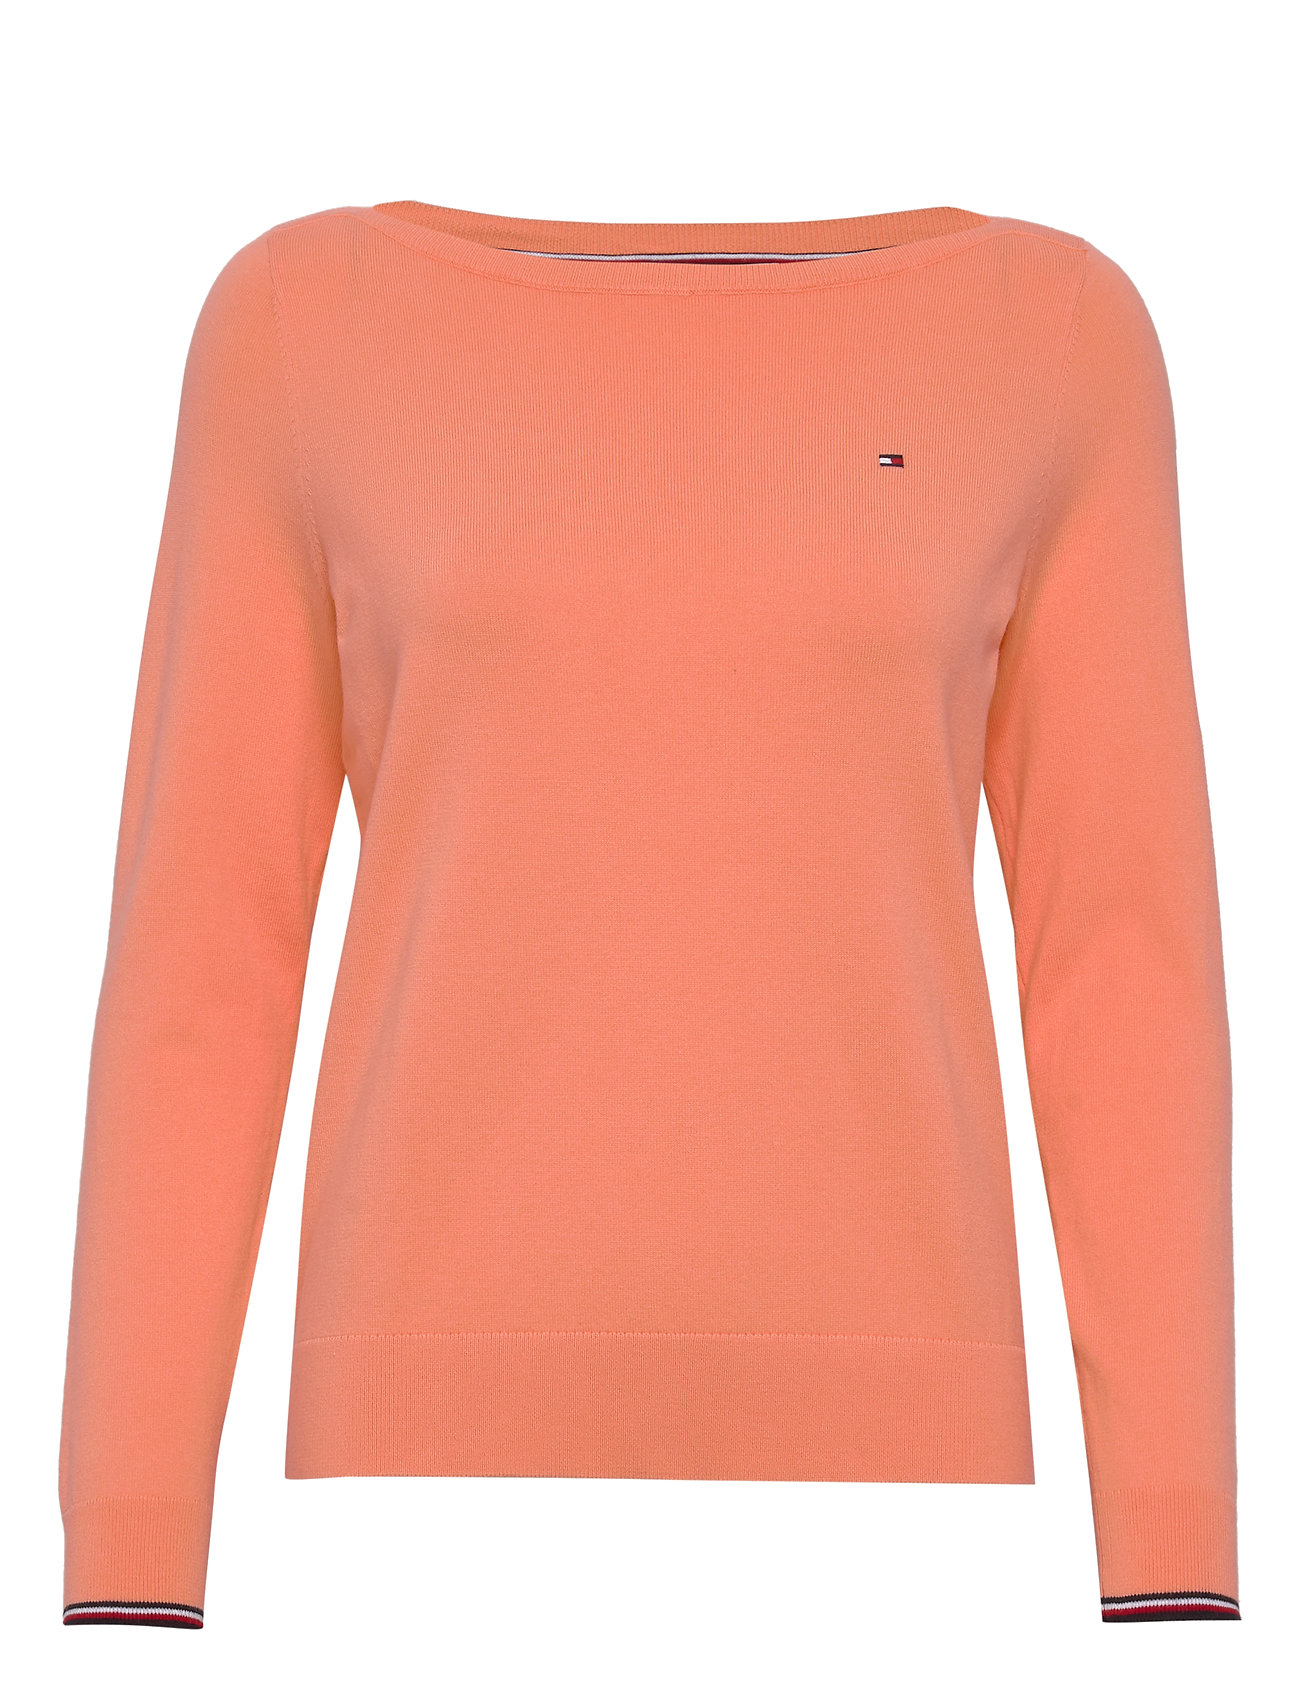 Tommy Hilfiger NEW IVY BOAT-NK SWTR - ISLAND CORAL